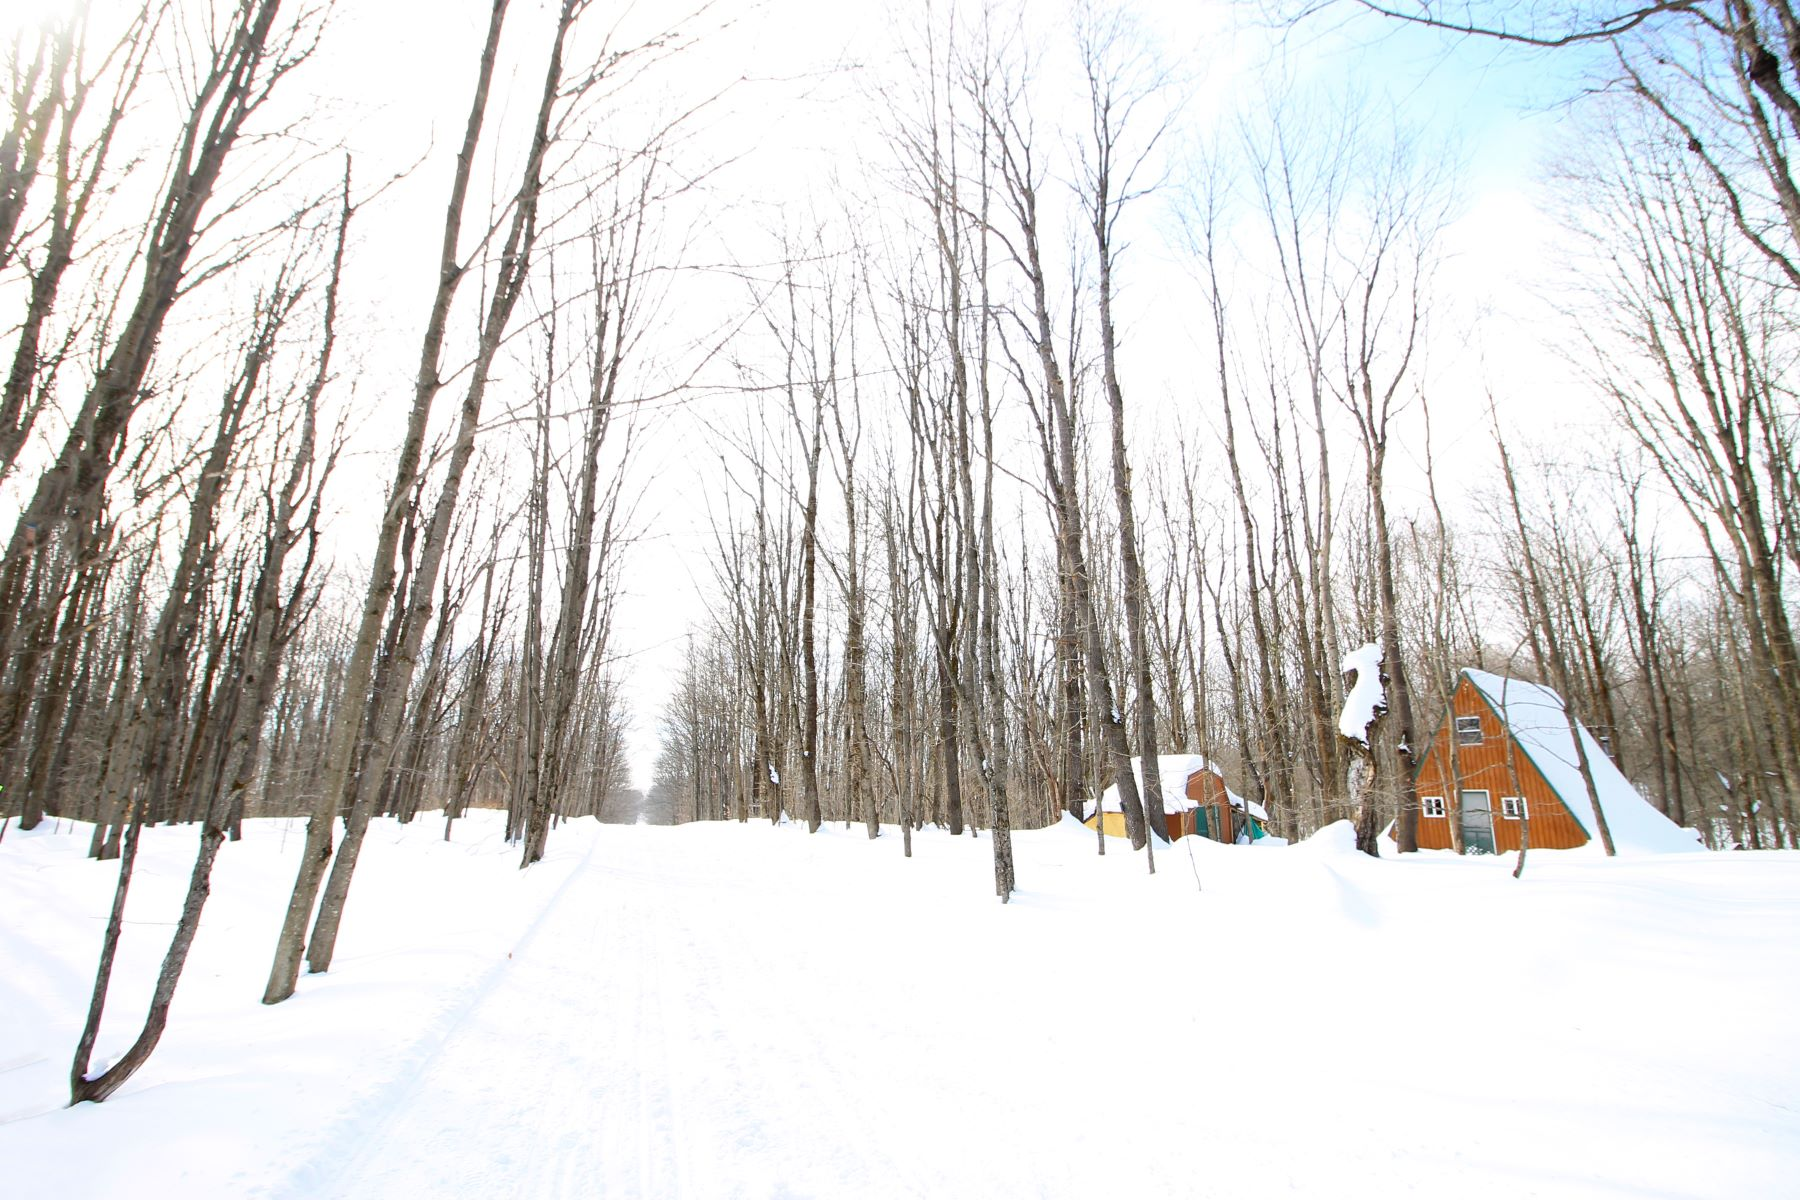 Single Family Homes for Sale at Rustic A-frame Ideal for Outdoor Enthusiasts 5317 Ziegler Road Boonville, New York 13309 United States